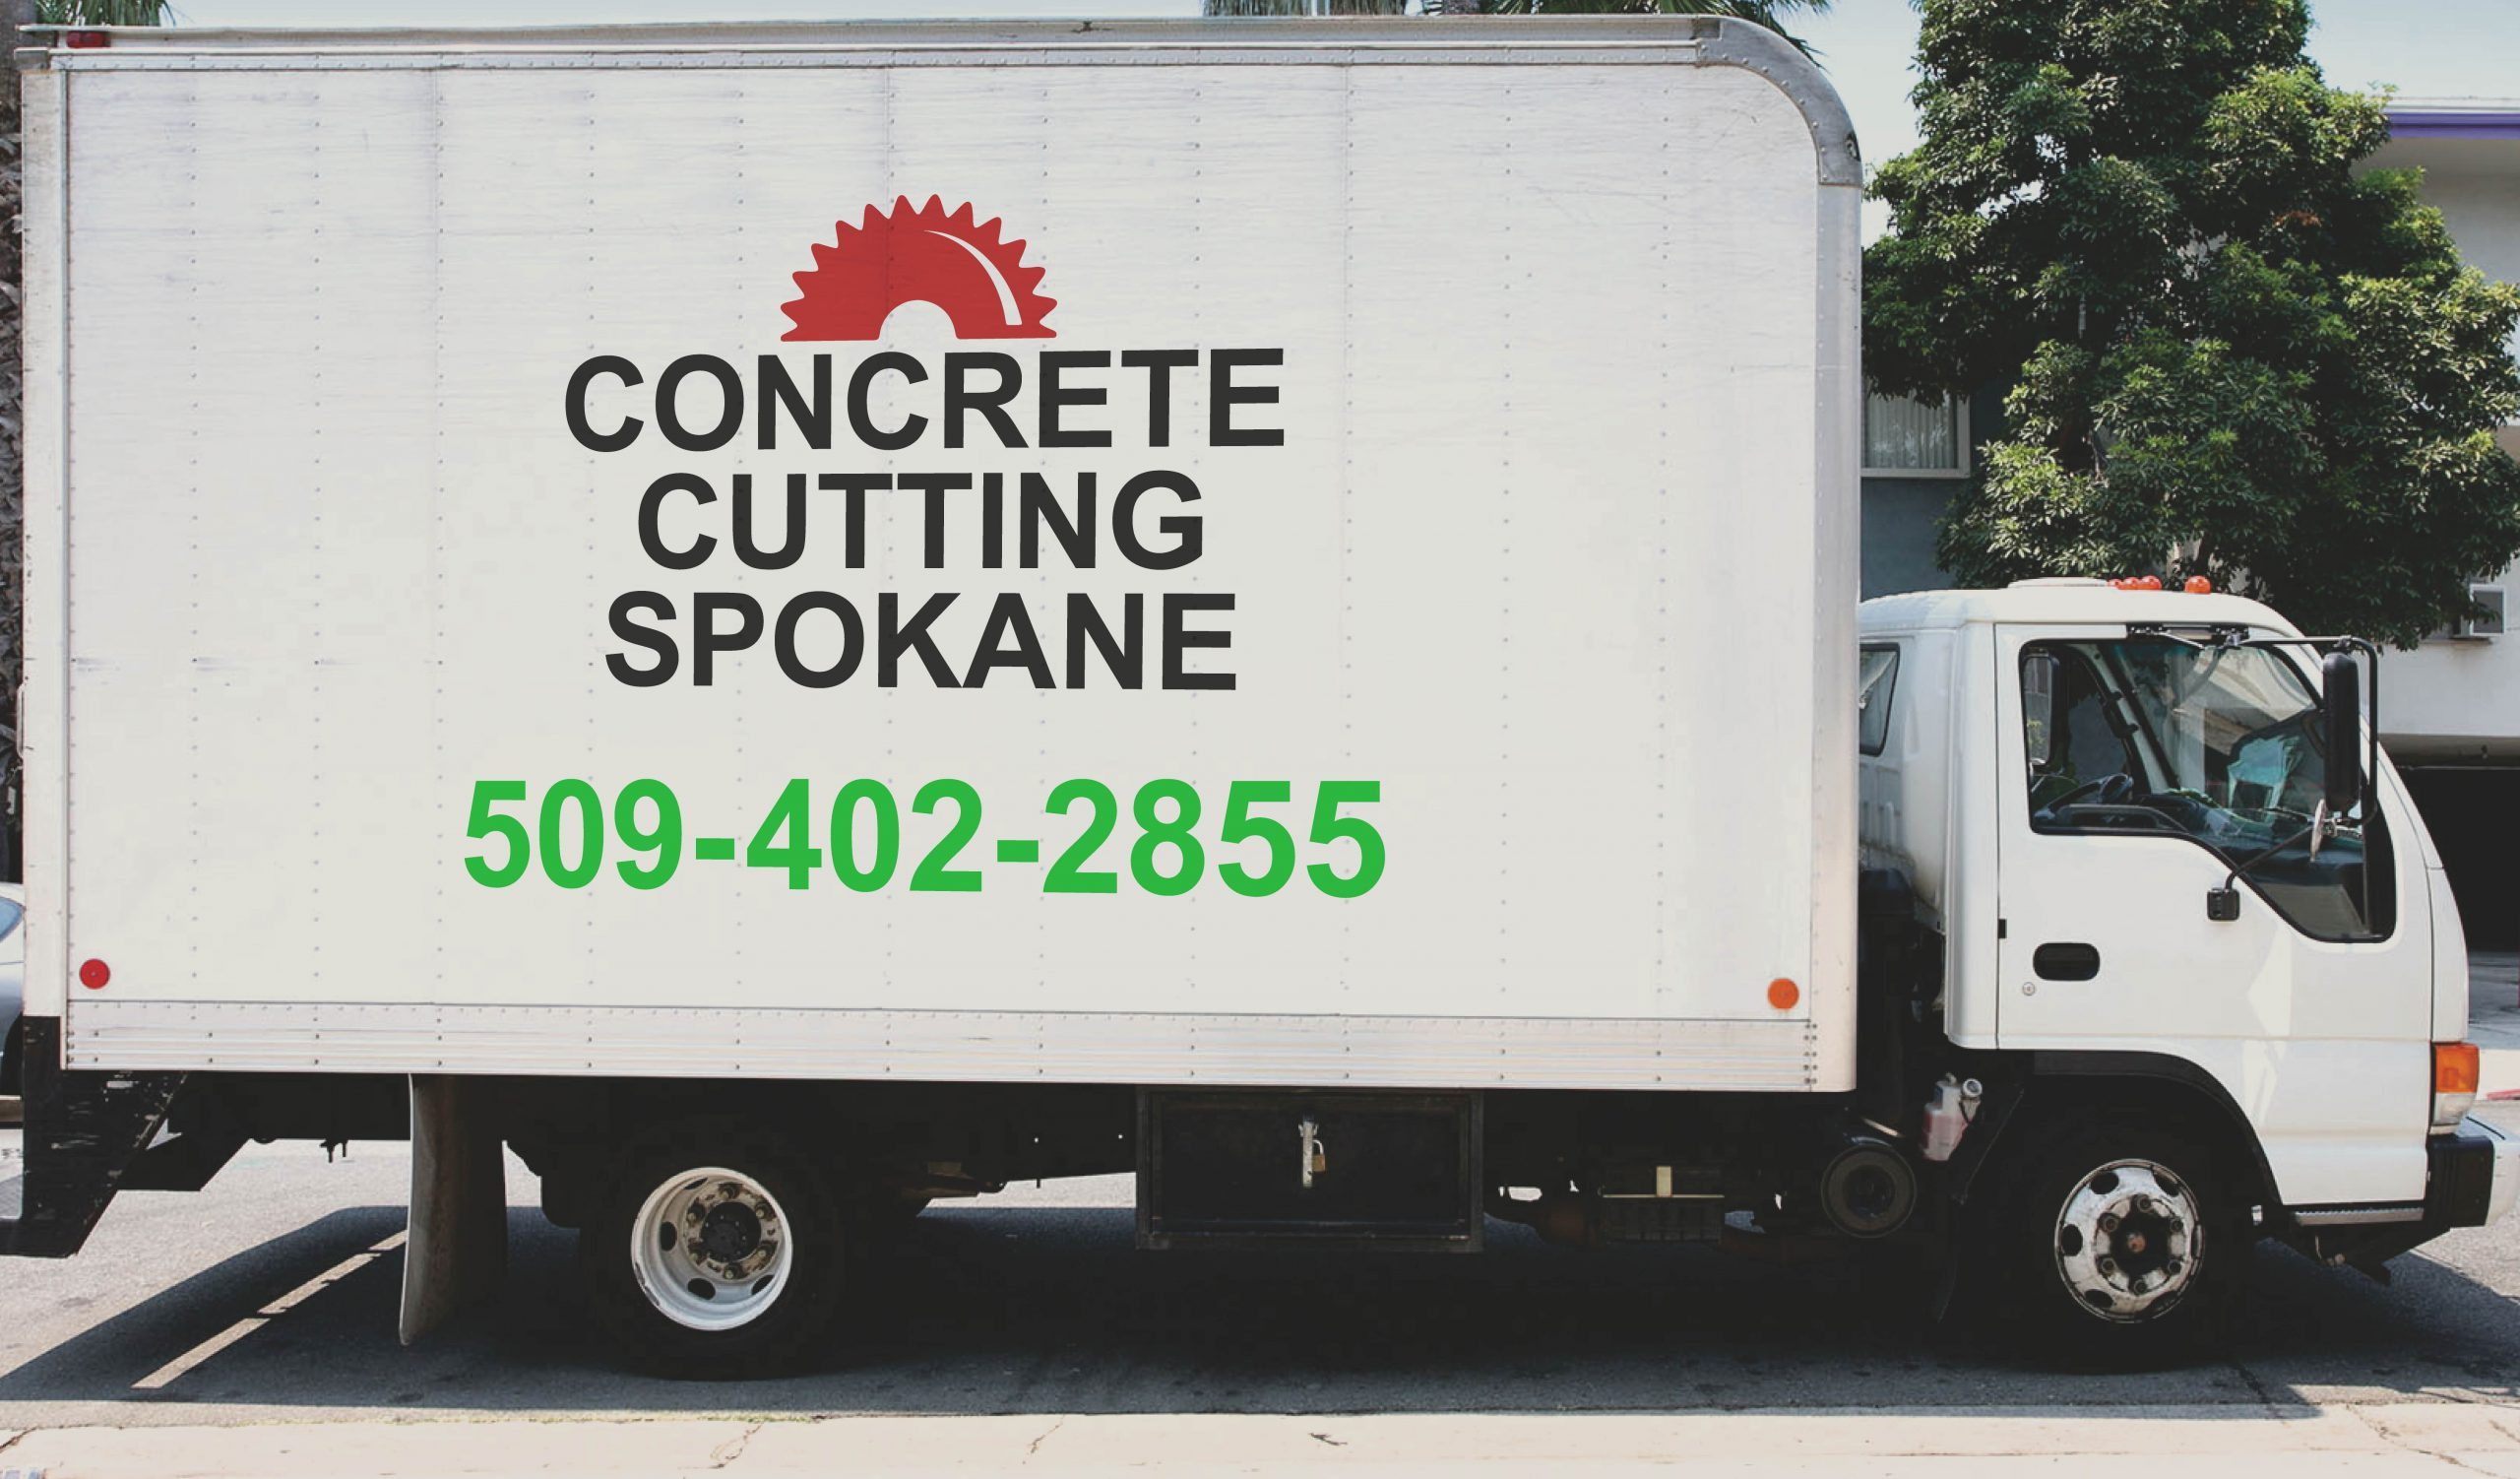 spokane concrete cutting